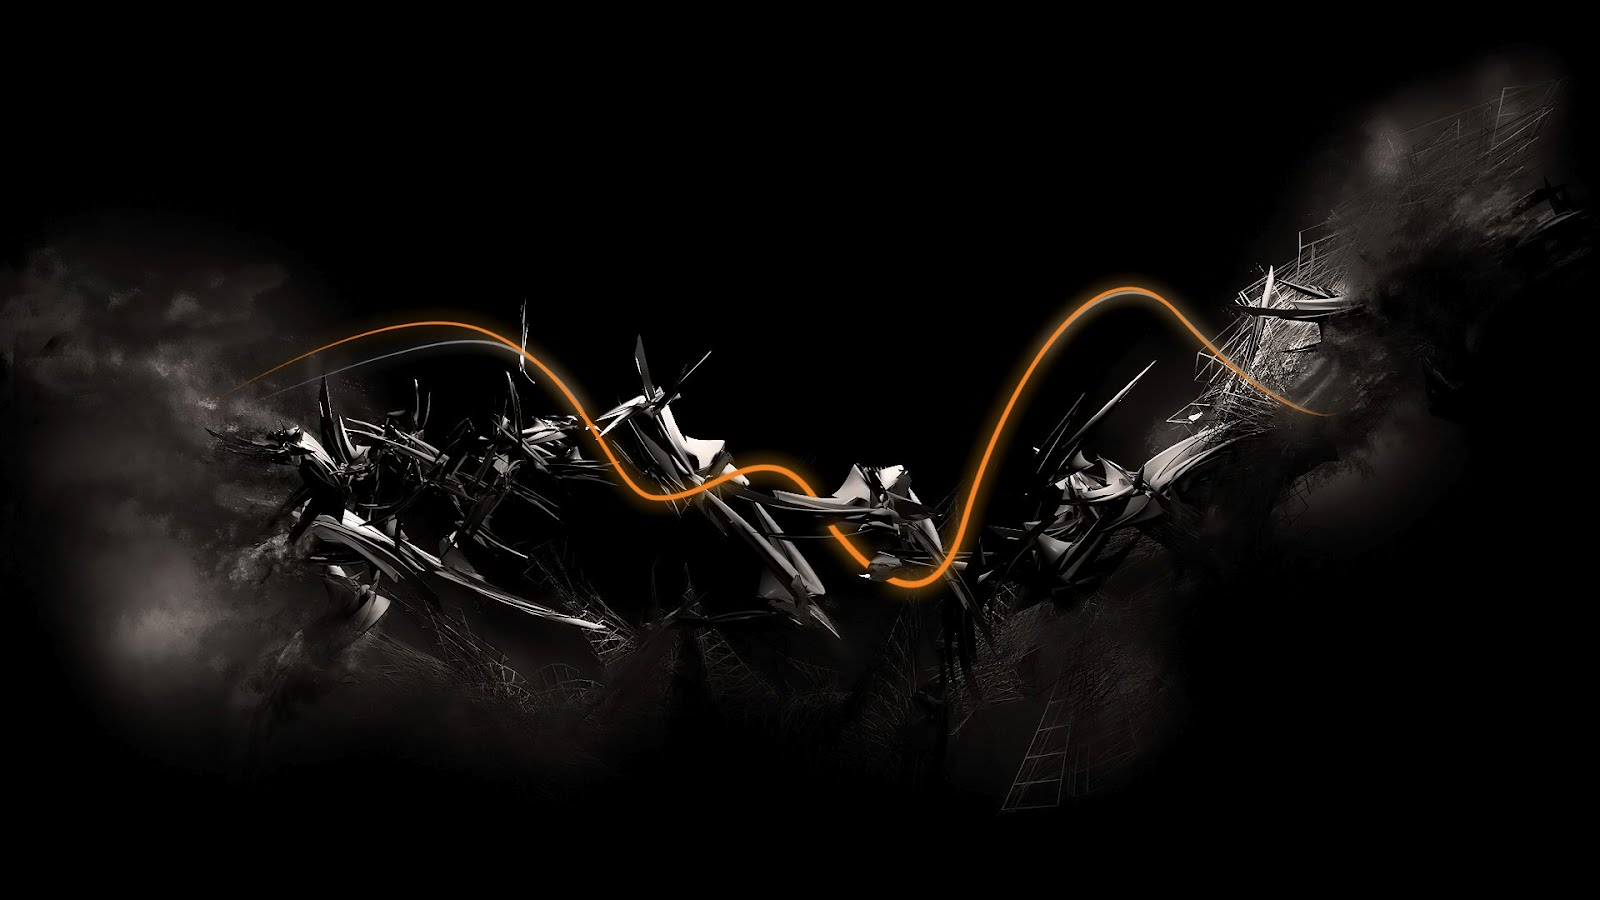 http://4.bp.blogspot.com/-zOBtCcZSv_Y/UQwgoNB-58I/AAAAAAAAAc0/PRPgDm2pu4g/s1600/black+abstract+wallpapers1.jpg